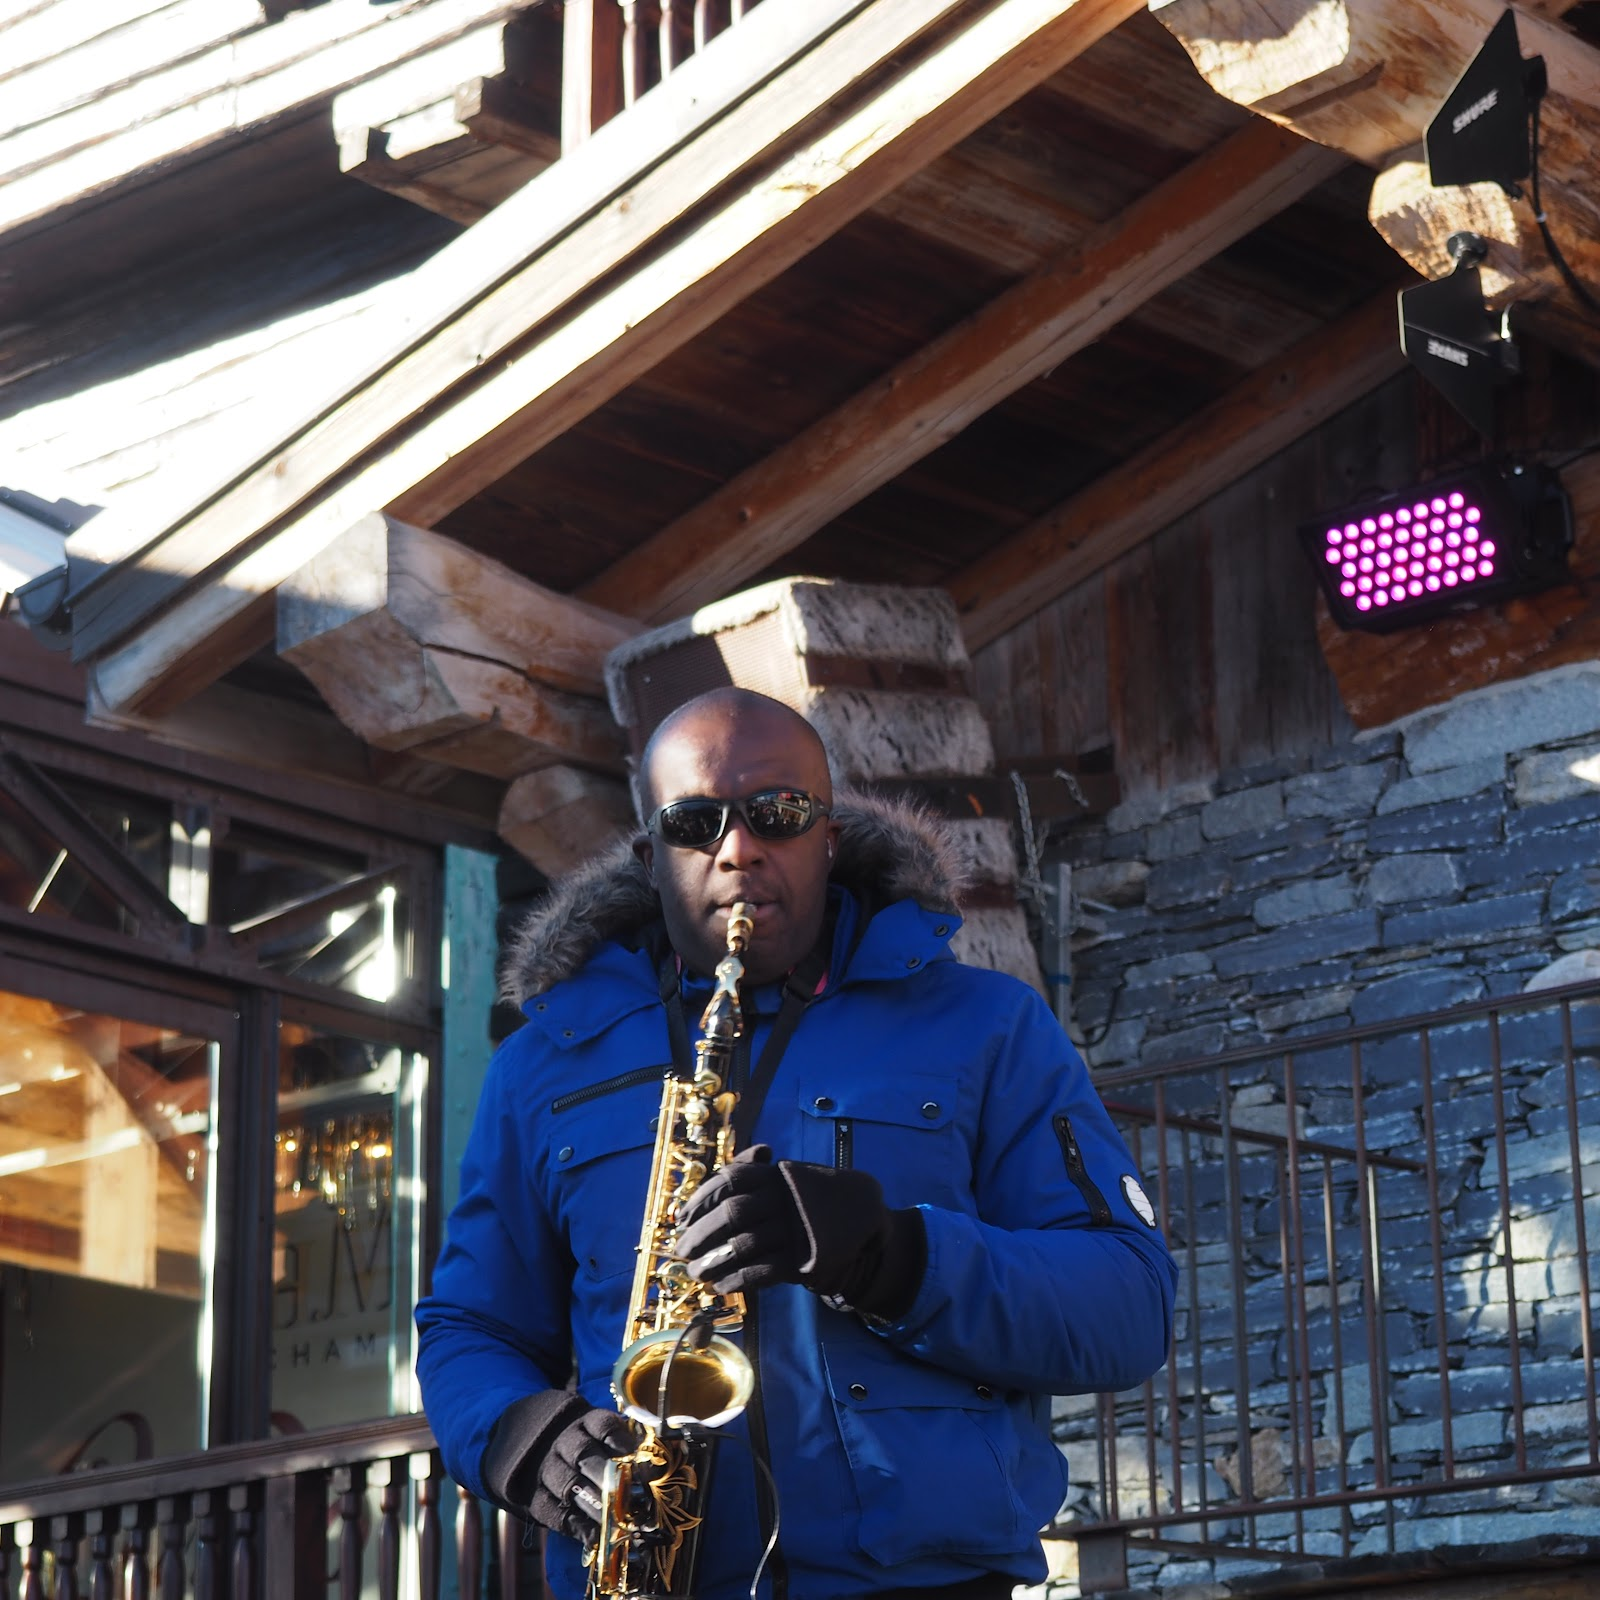 saxophone player at La Folie Douce, Val d'Isere, France